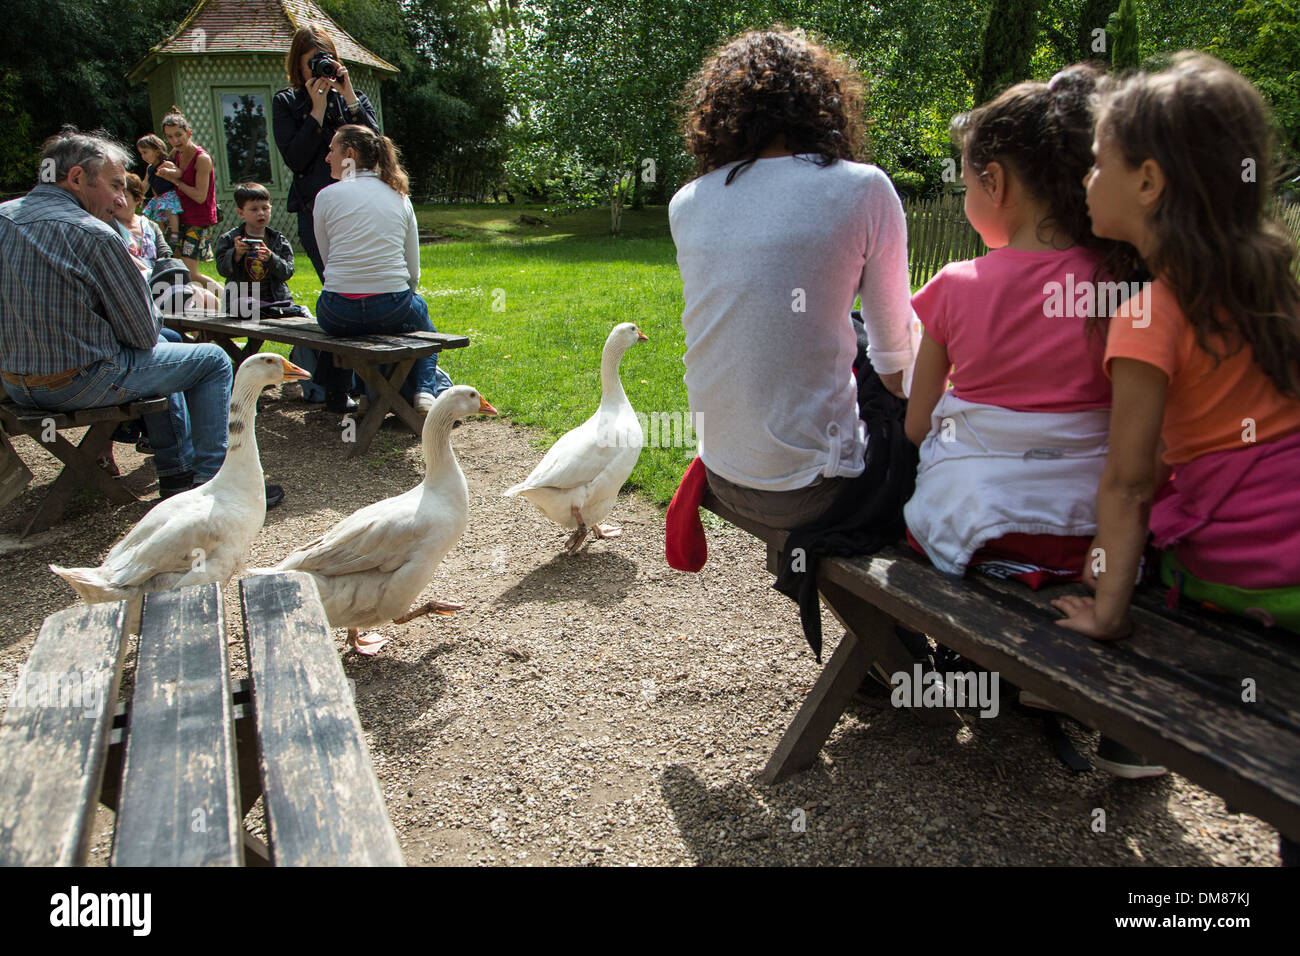 GEESE IN THE OLD-FASHIONED FARMYARD, FAMILY VISITING THE FARMYARD MUSEUM AT THE POTAGER DES PRINCES, CHANTILLY, - Stock Image